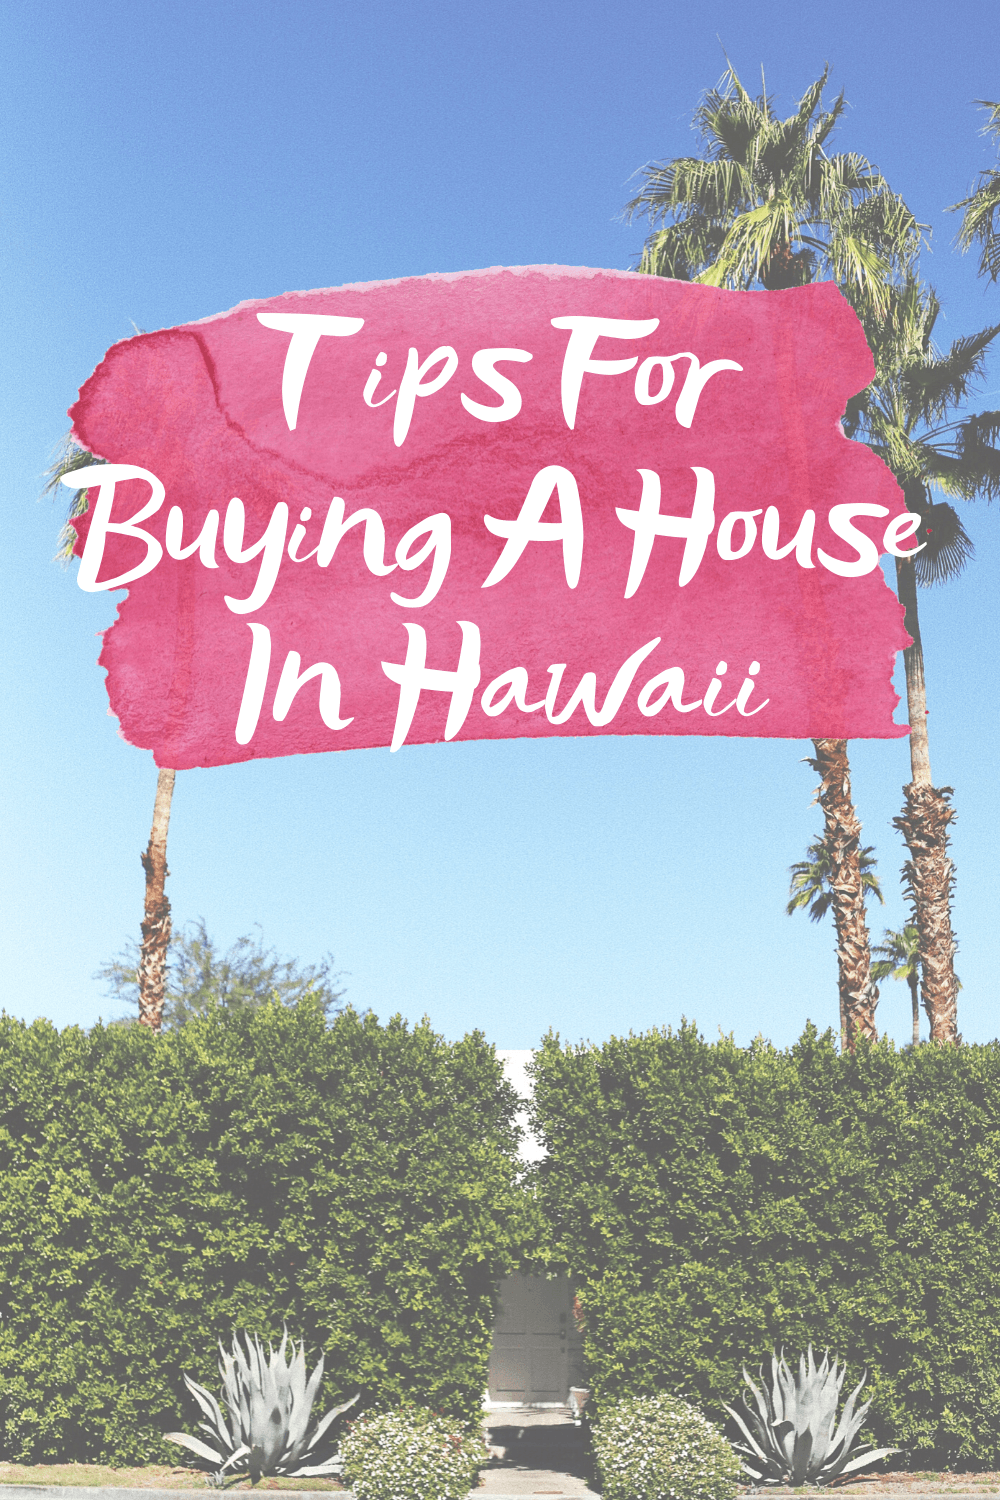 TIPS FOR BUYING A HOUSE IN HAWAII - Thinking of buying a home in the Hawaiian Islands? Here are a couple tips to make your life easier! | Buying A House In Hawaii - Buying A Home In Hawaii - Buying A Home In Hawaii - Tips For Buying A House In Hawaii - Hawaii Real Estate